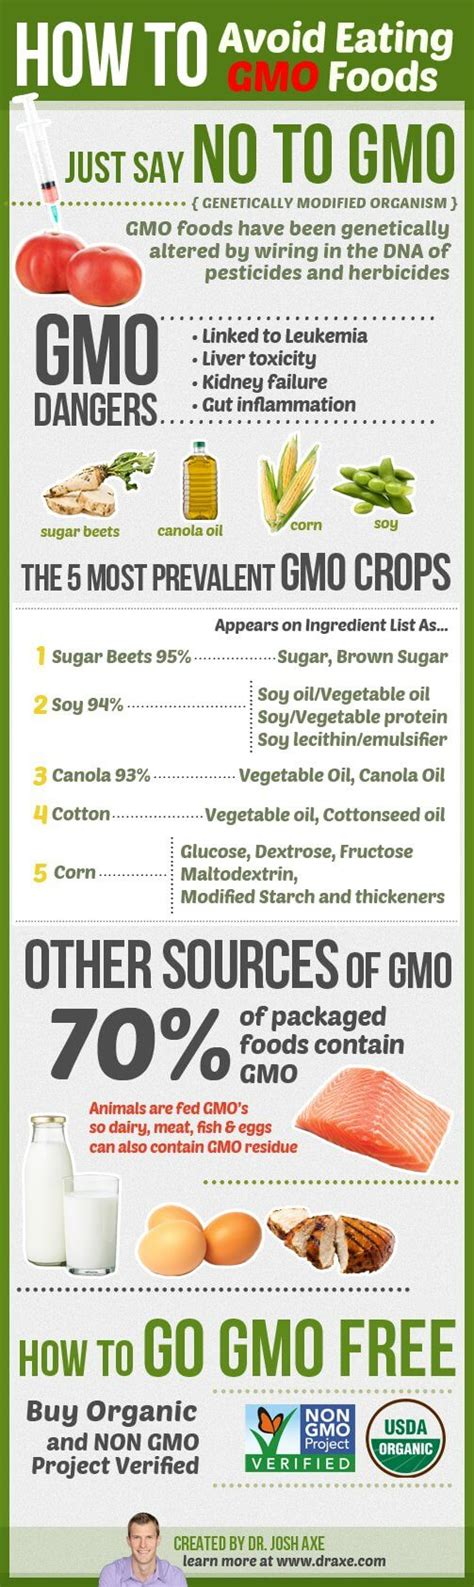 genetic avoid genetically engineered foods by jeffrey m smith fairfield ia genetically modified foods gmo linked to tumors allergies and early dr axe